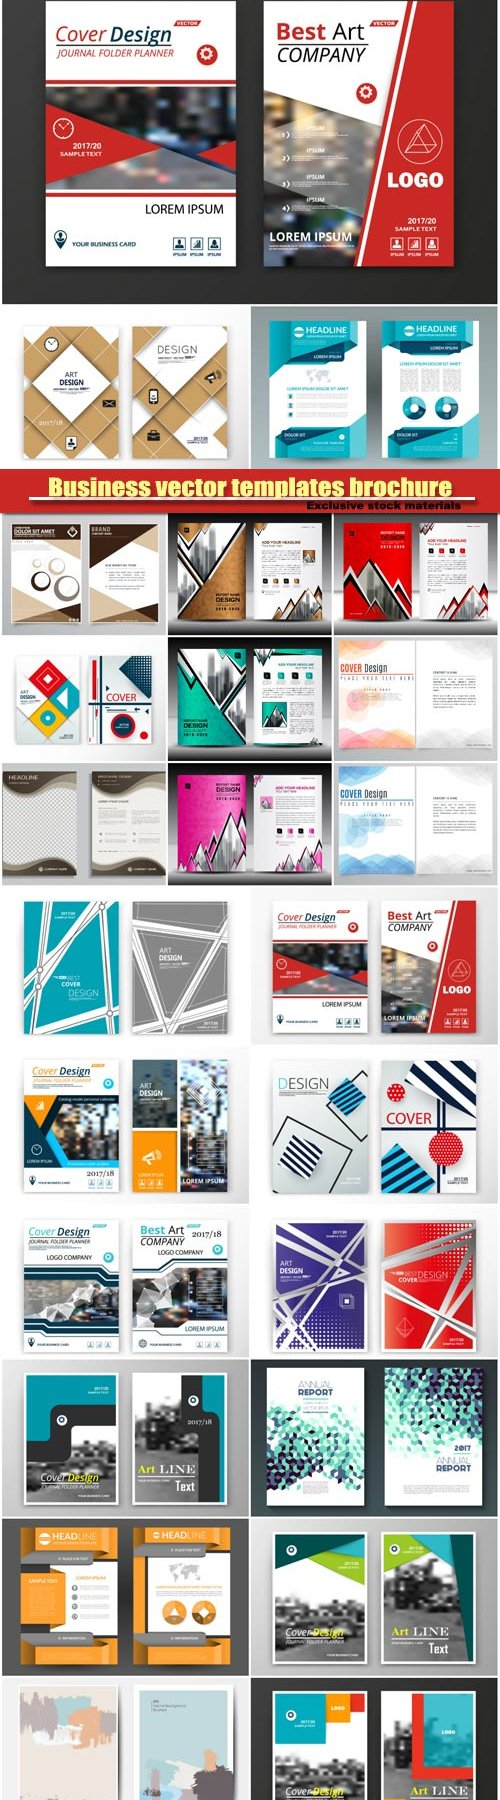 Business vector flyer templates brochure, colored cover image texture